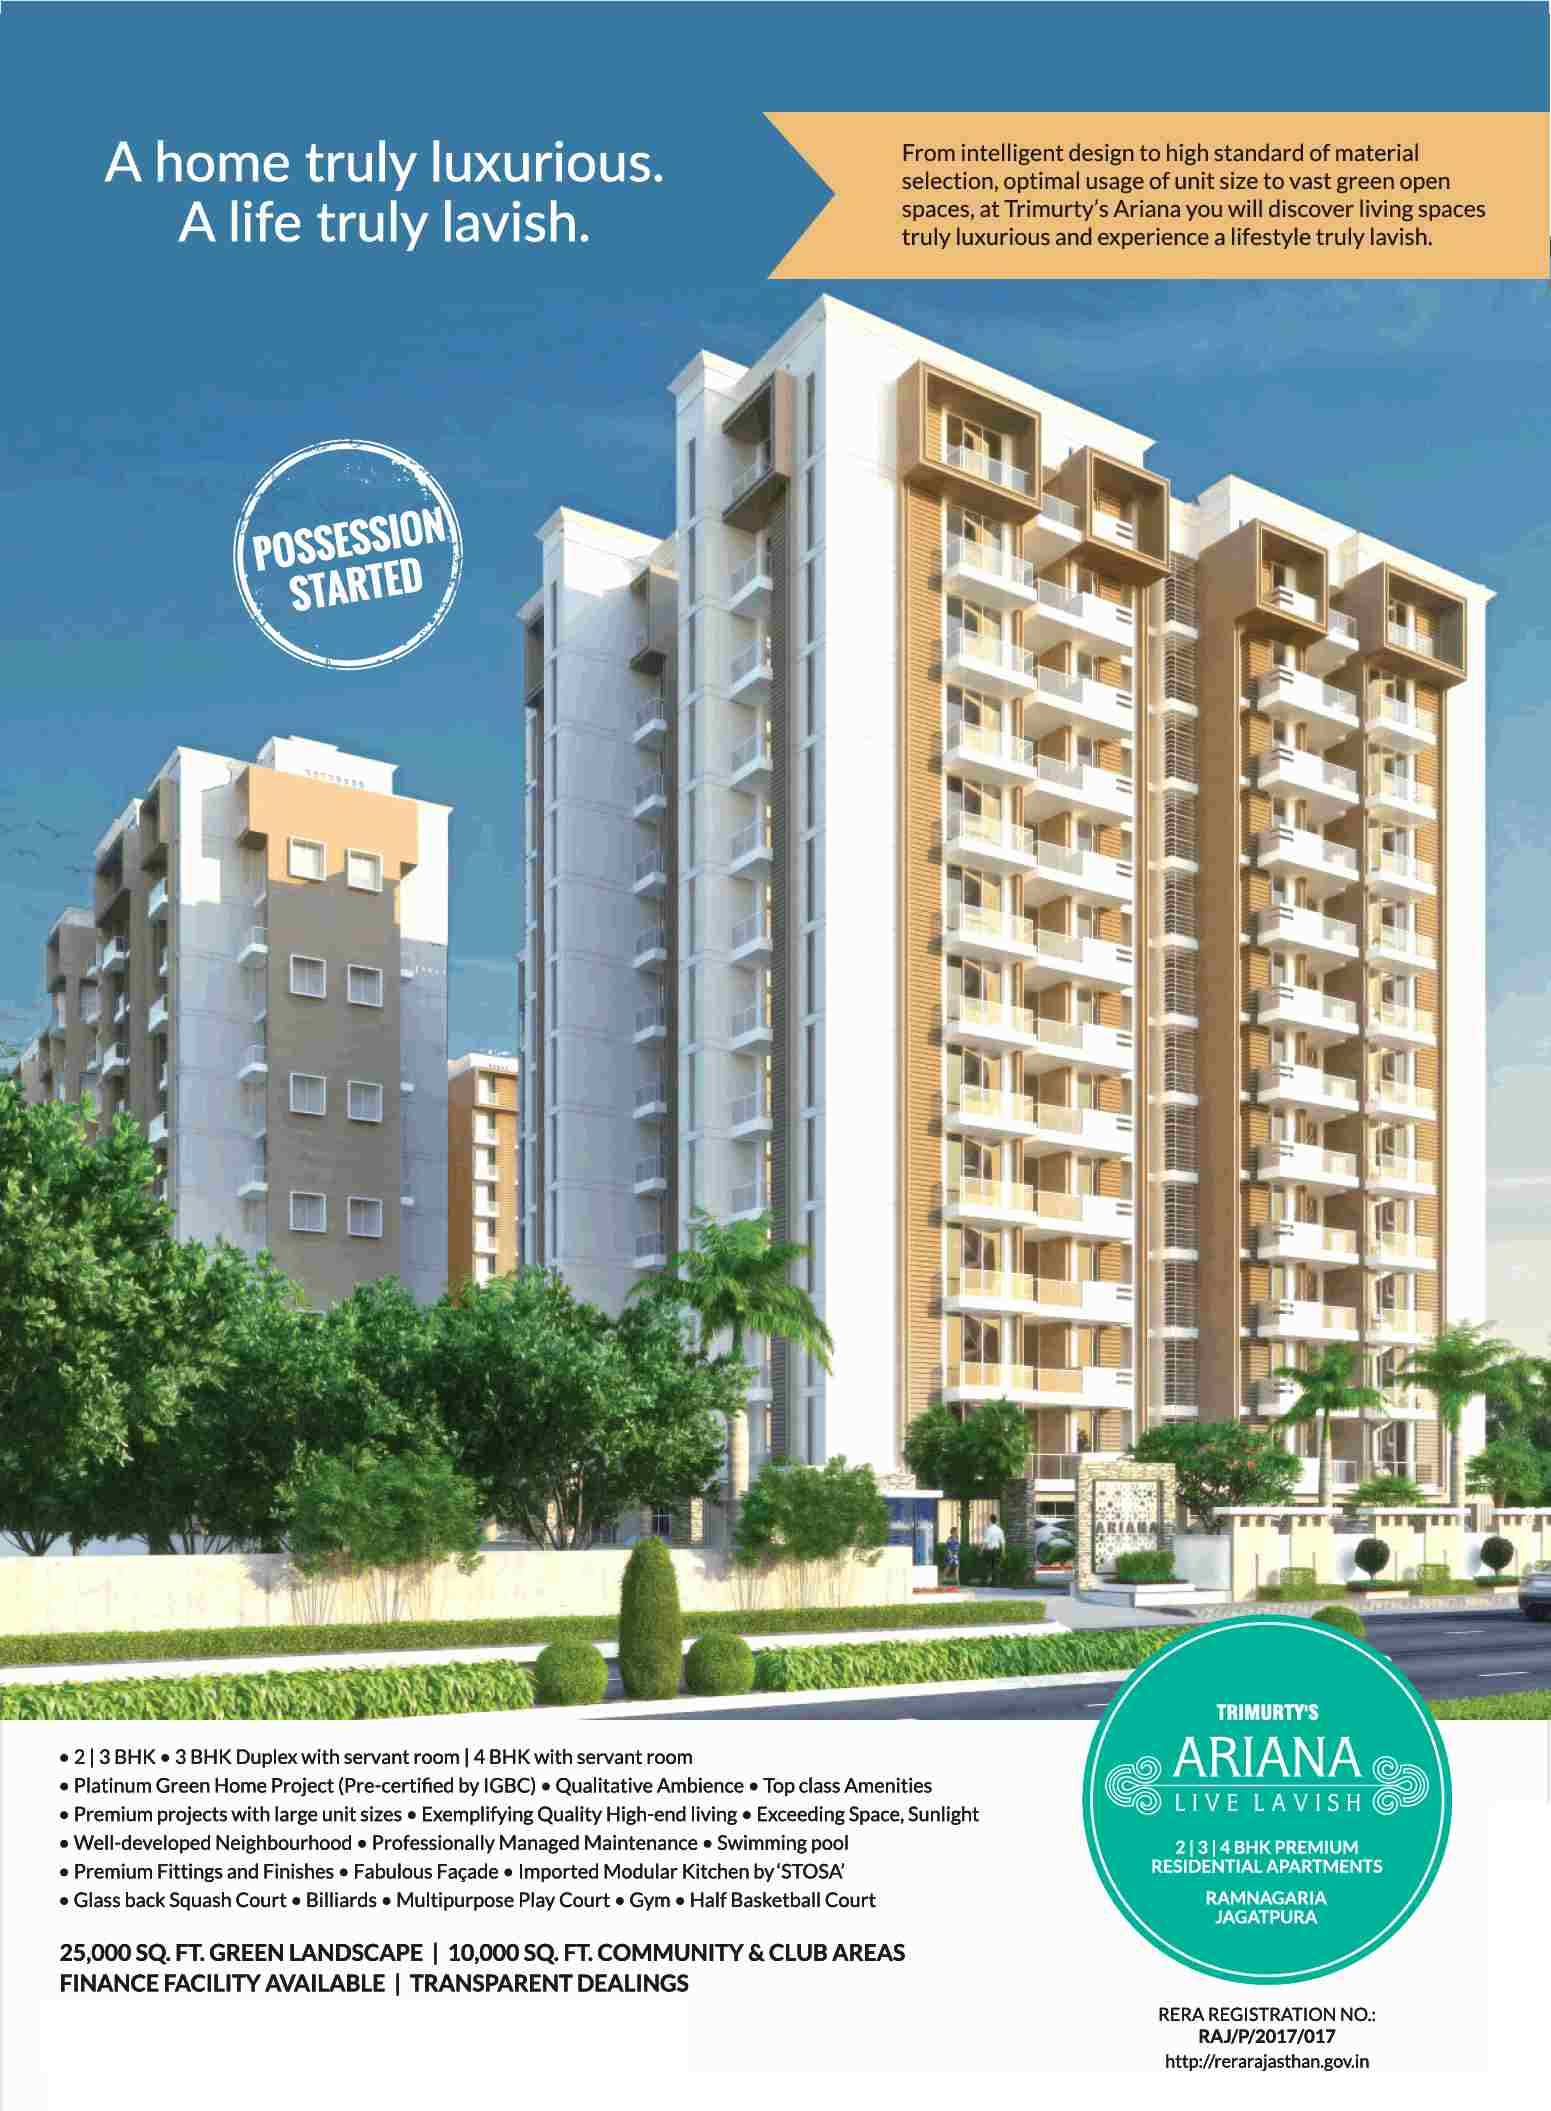 Possession started at Trimurty Ariana in Jaipur - Zricks.com